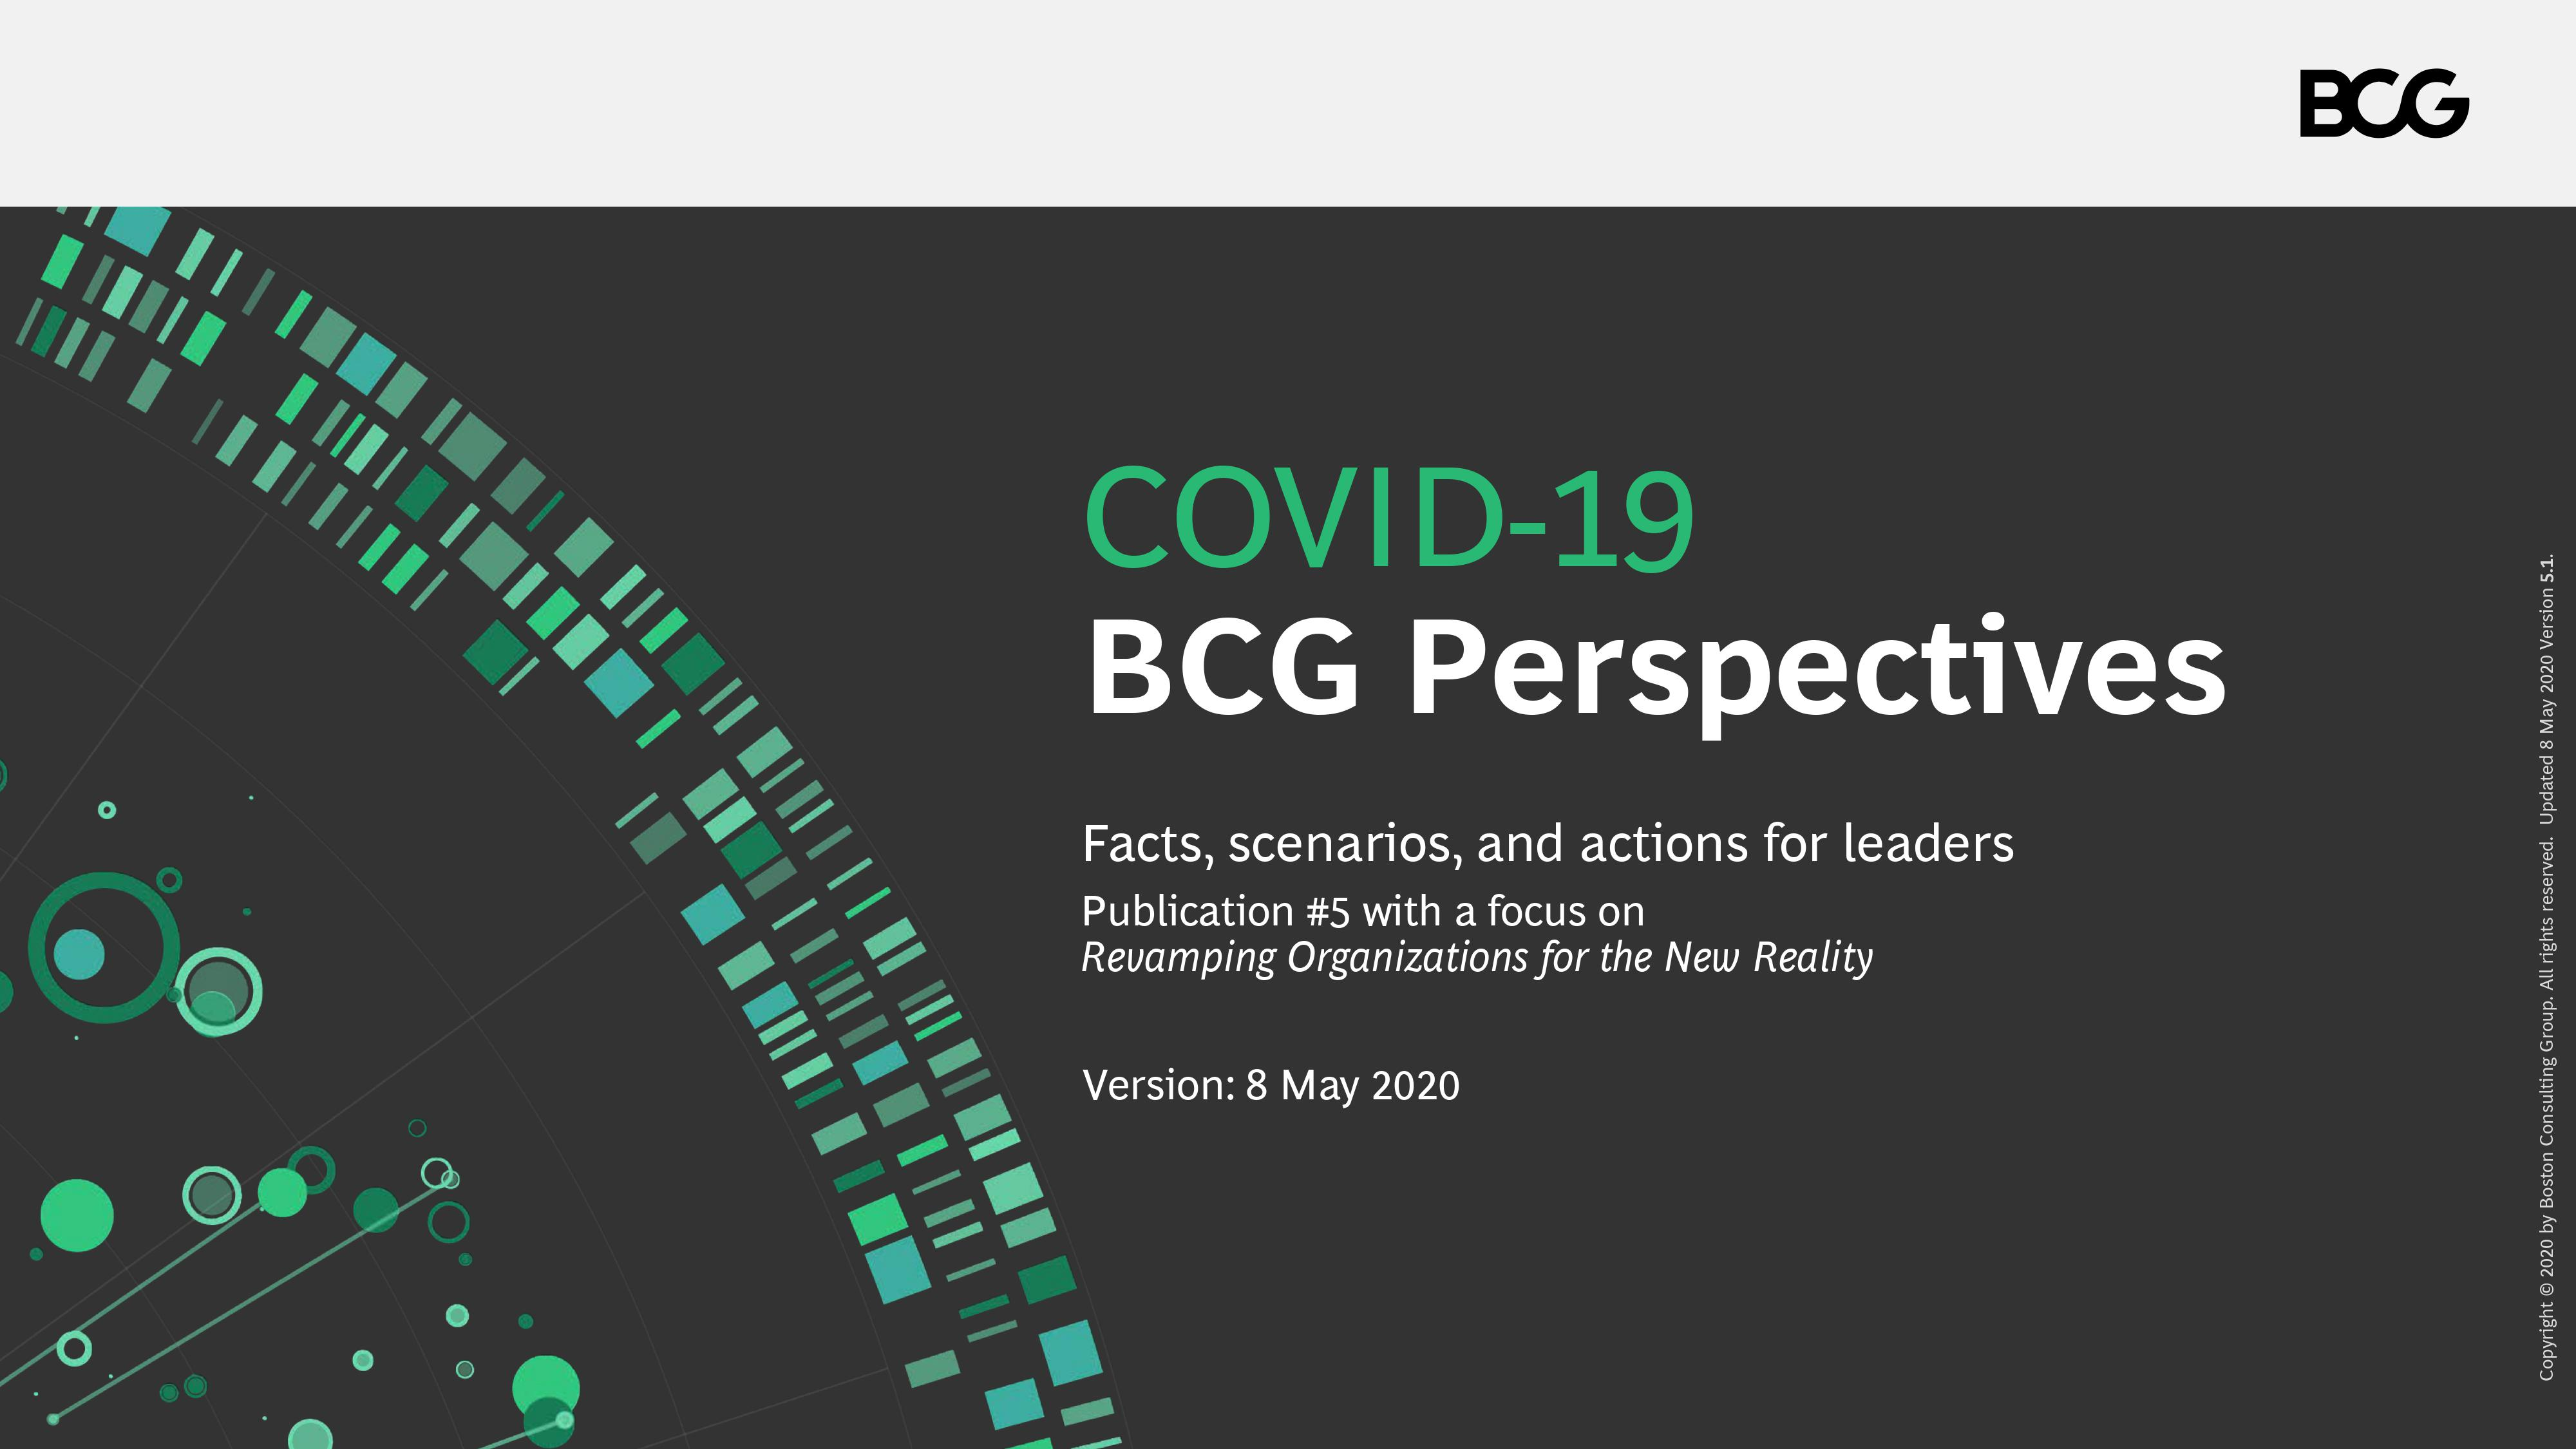 BCG COVID-19 BCG Perspectives